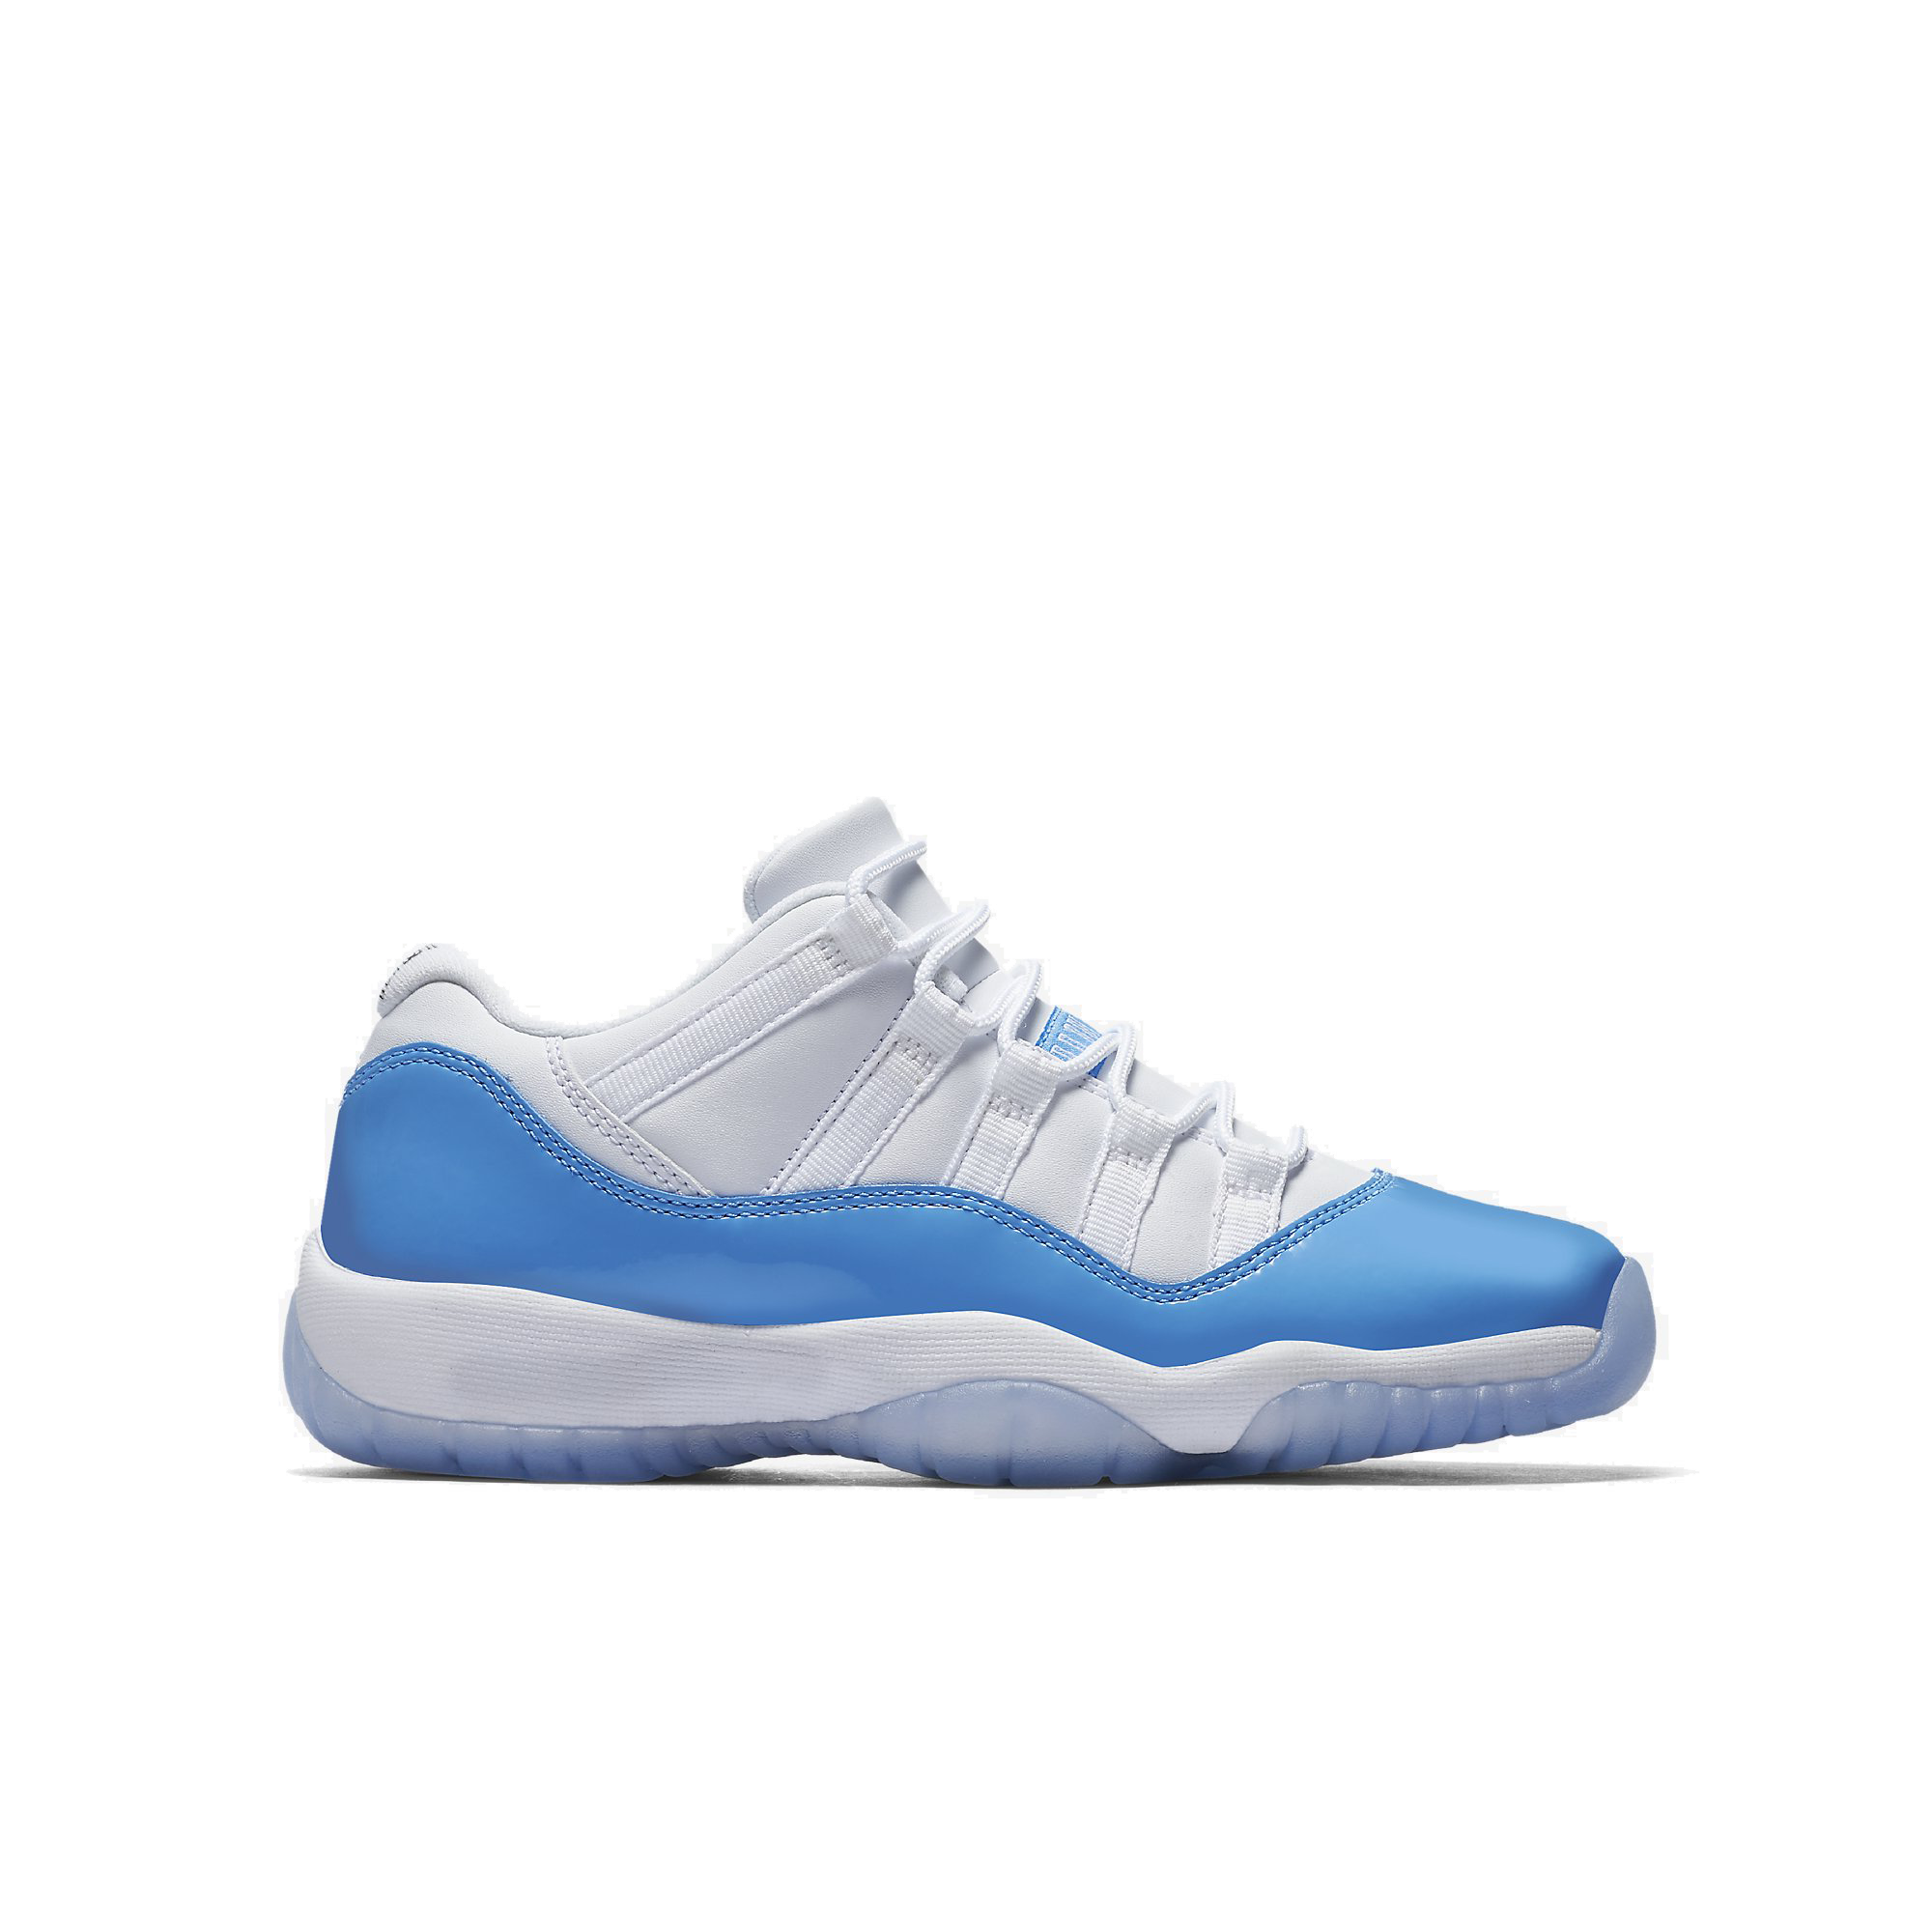 ffa43c7520b Air Jordan 11 Retro Low GS Colorway  White University Blue Style  528896-106.  Release Date  04.15.17